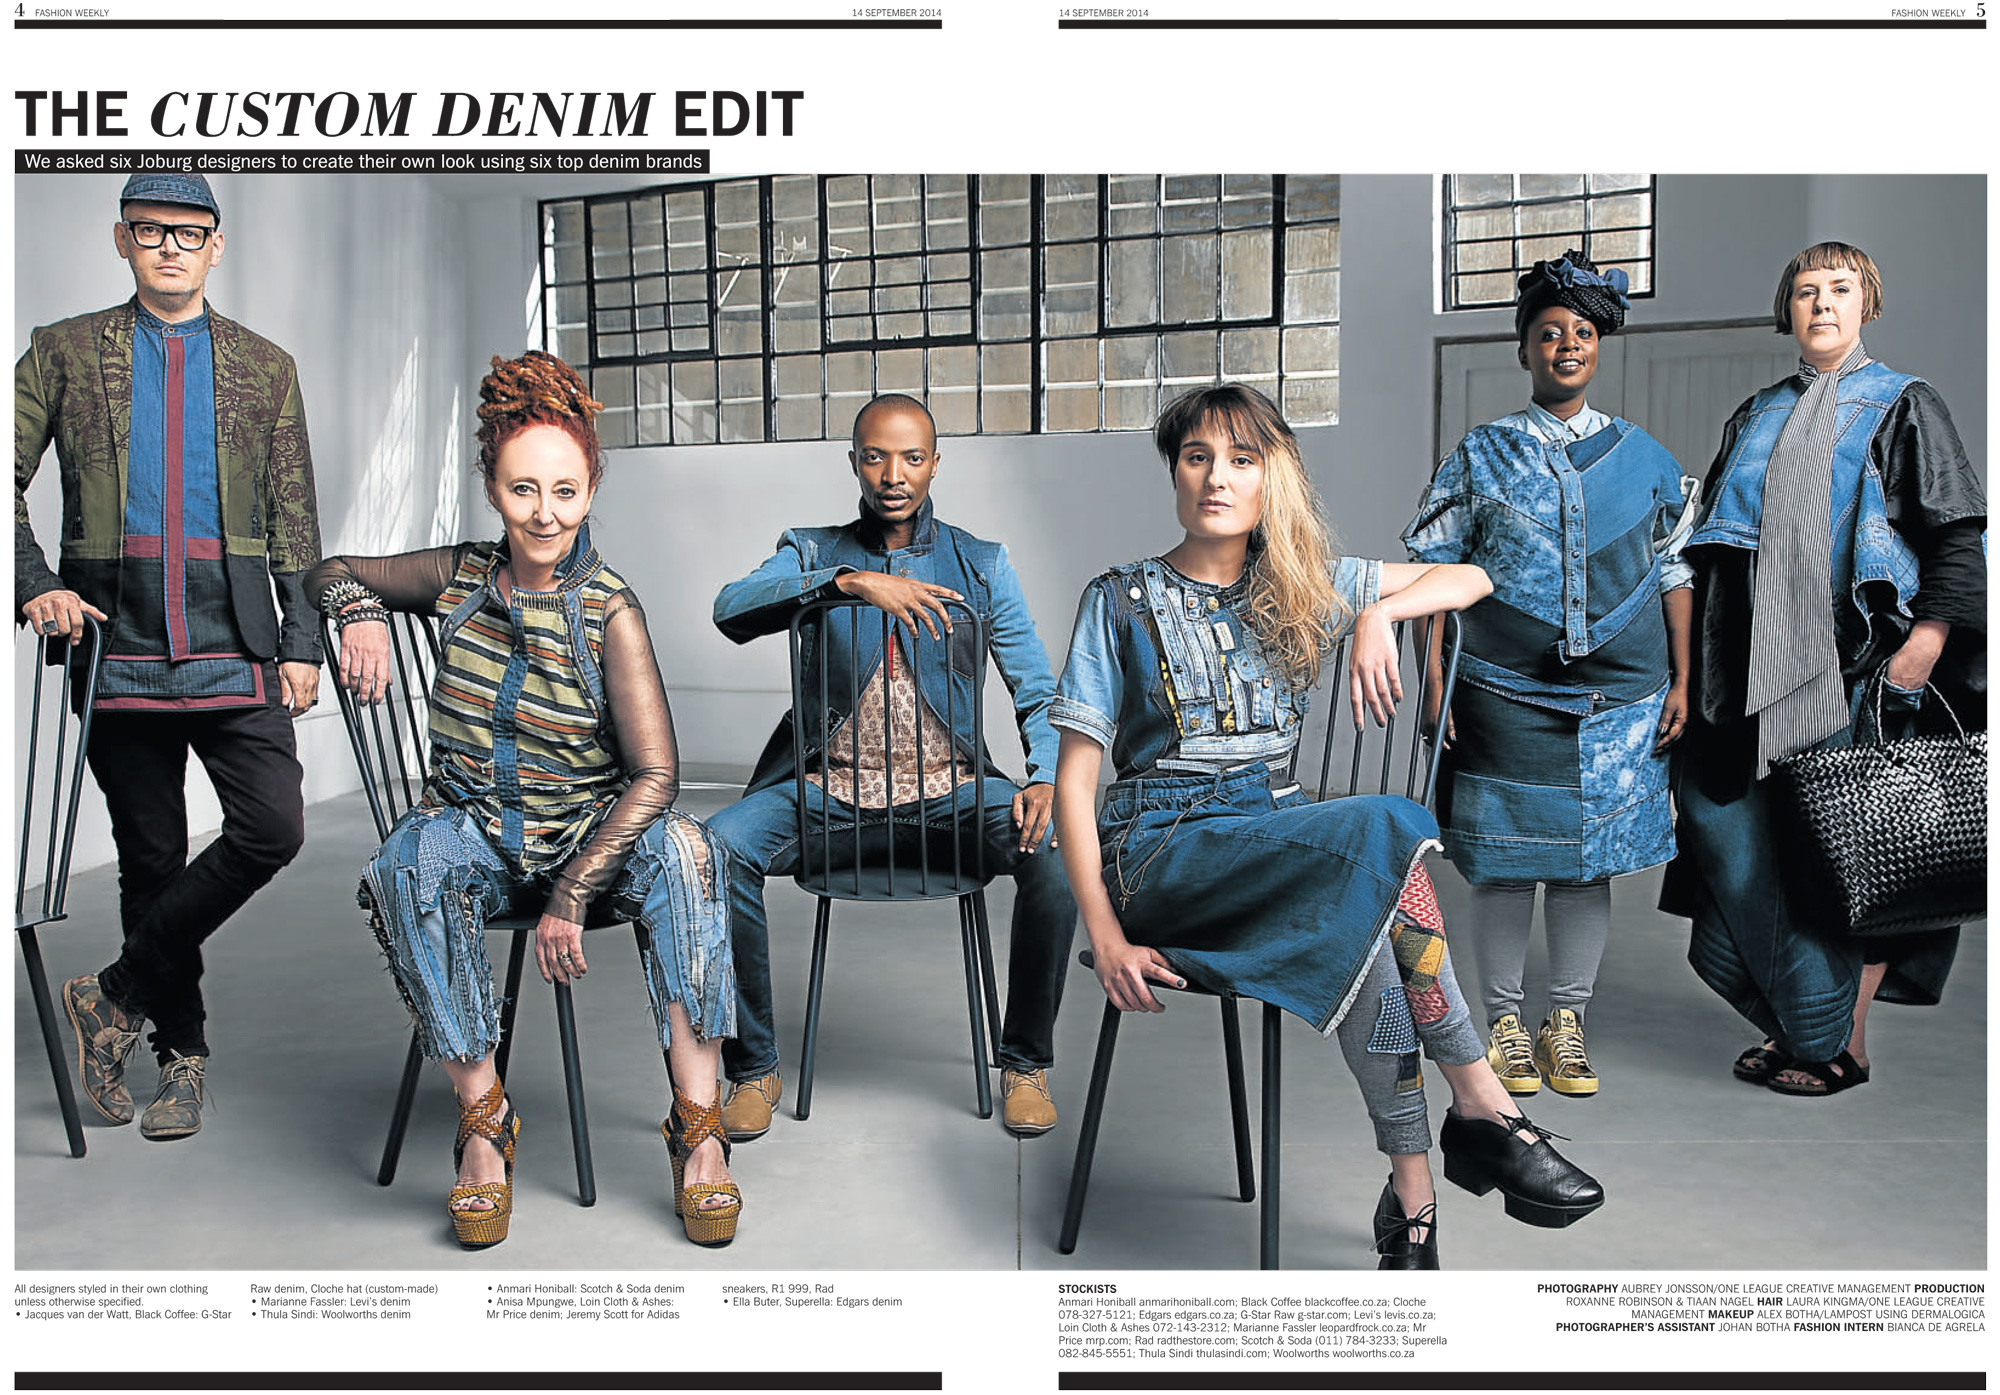 The Custom Denim Edit in Sunday Times Fashion Weekly